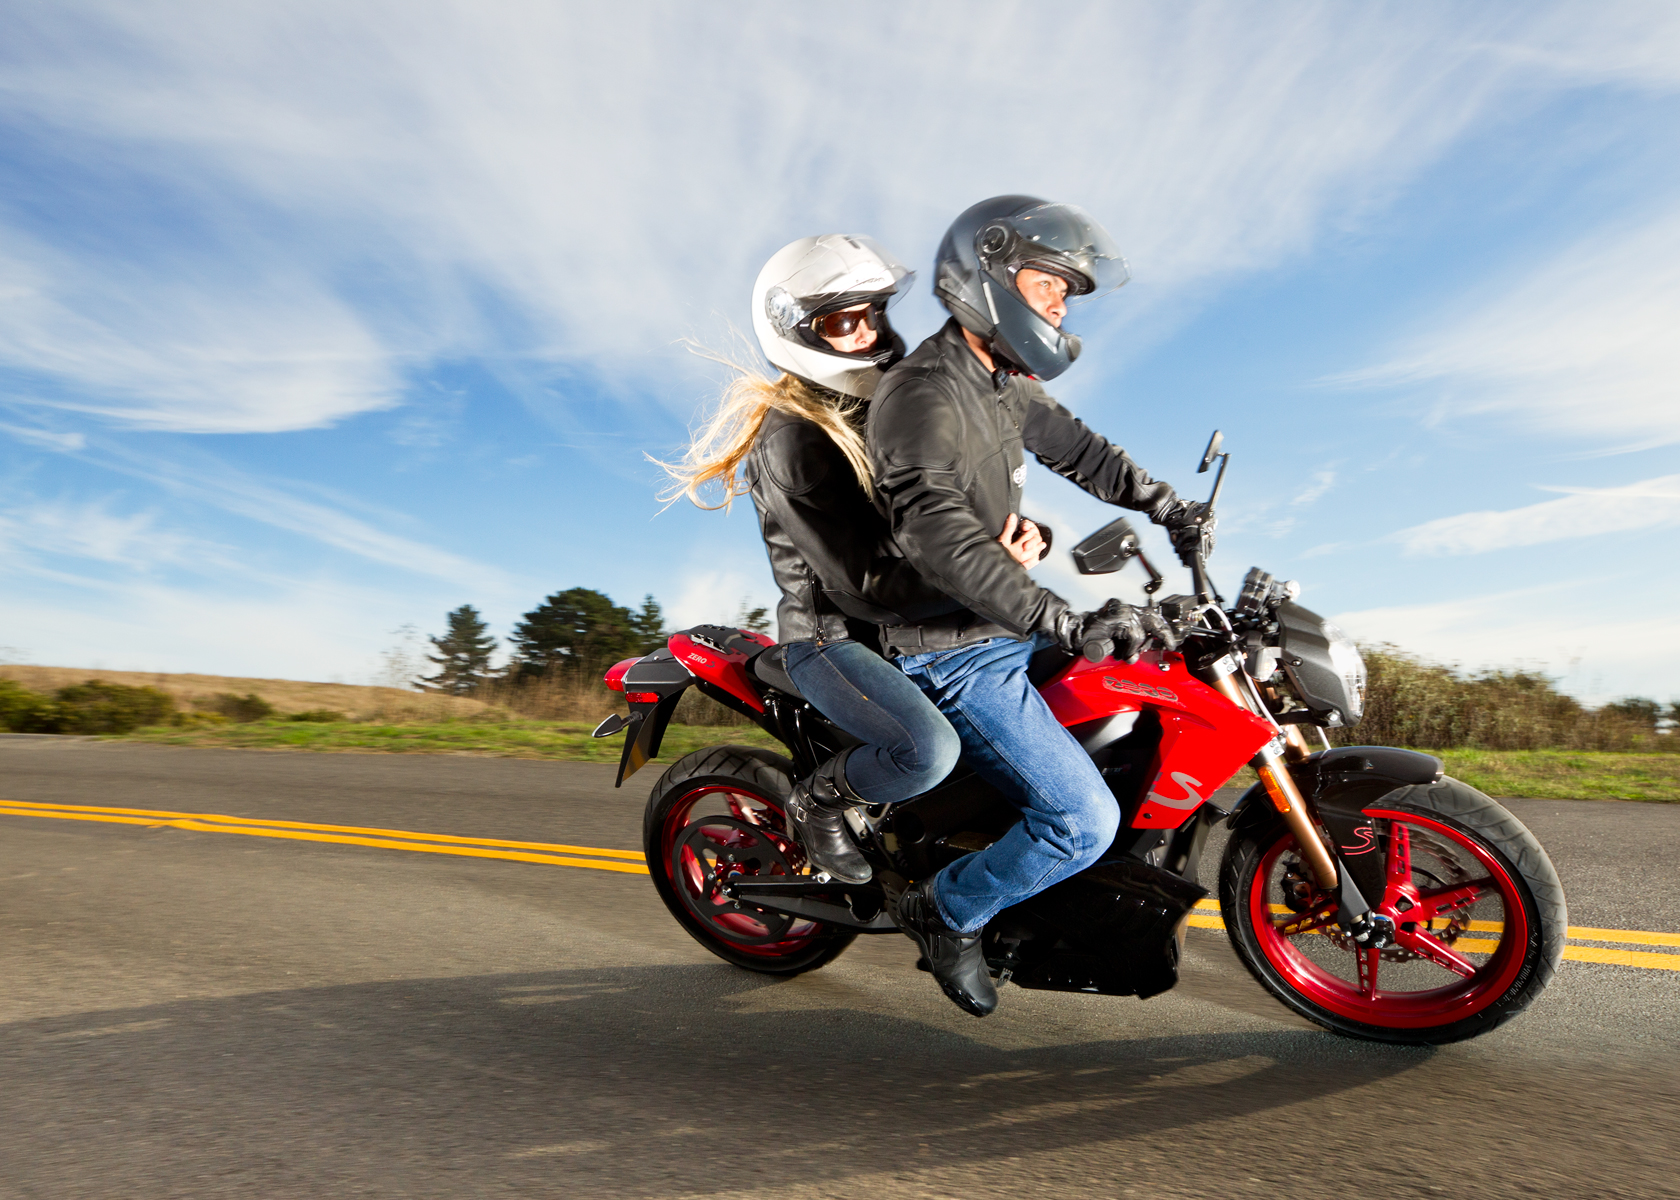 '.2012 Zero S Electric Motorcycle: Rider and Companion, Cruising.'